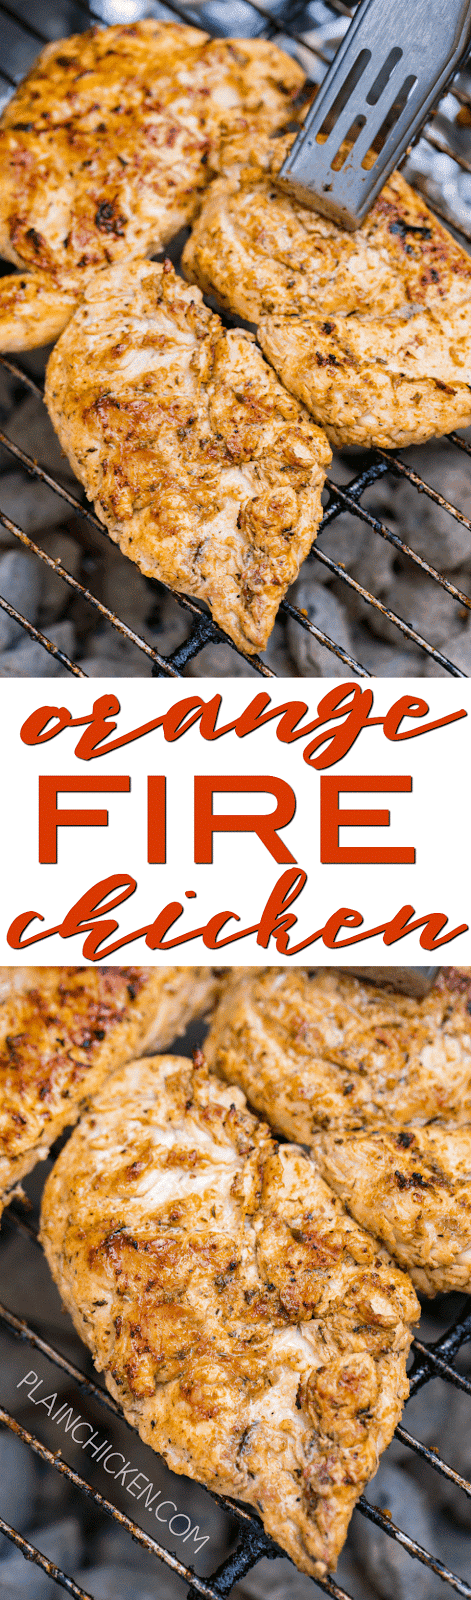 Orange Fire Chicken - seriously THE BEST! Chicken marinated overnight in vegetable oil, orange juice, salt, paprika, oregano, onion powder, thyme and garlic. This chicken is so tender and juicy. Tastes great leftover too!! We always double the recipe! Everyone asks for the recipe! SO YUM!